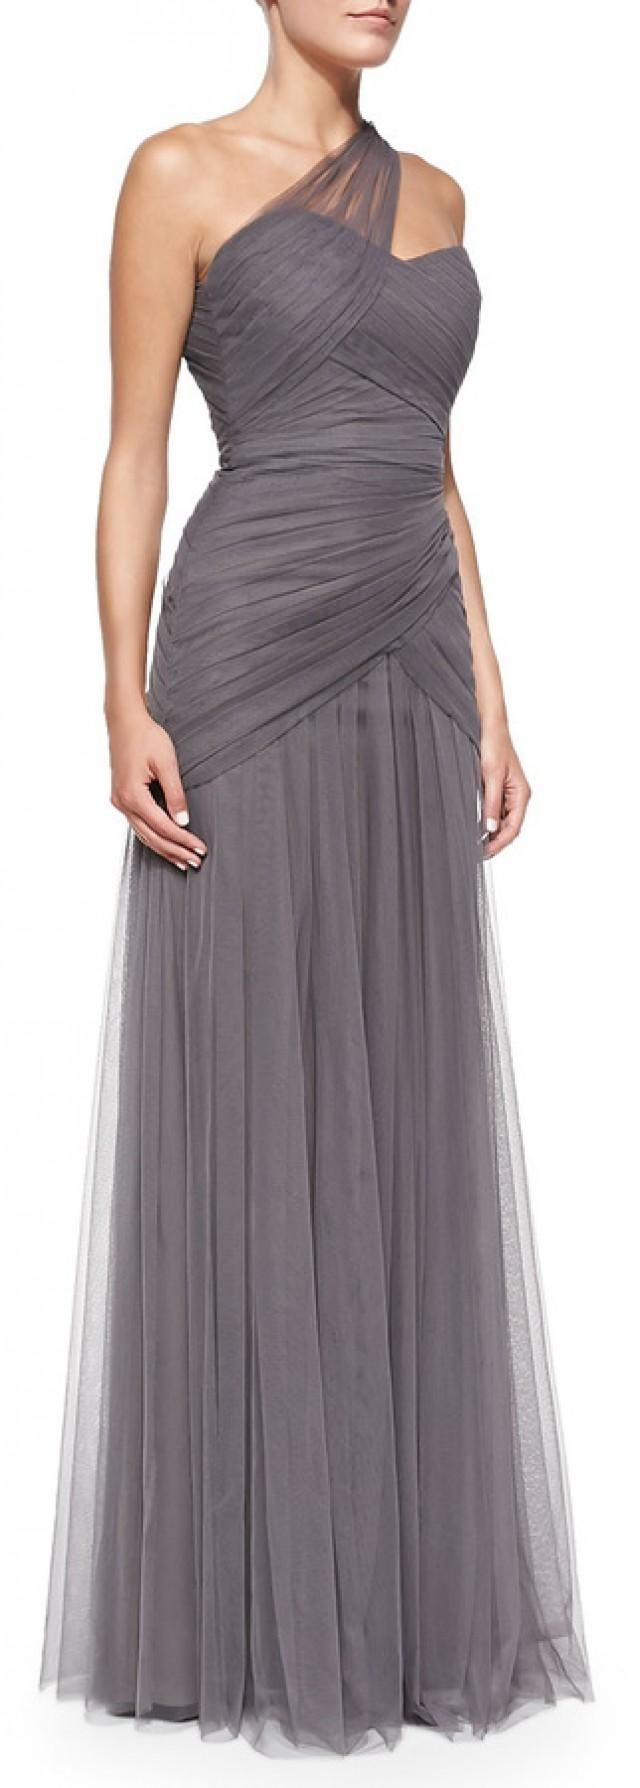 Draped One Shoulder Tulle Dress